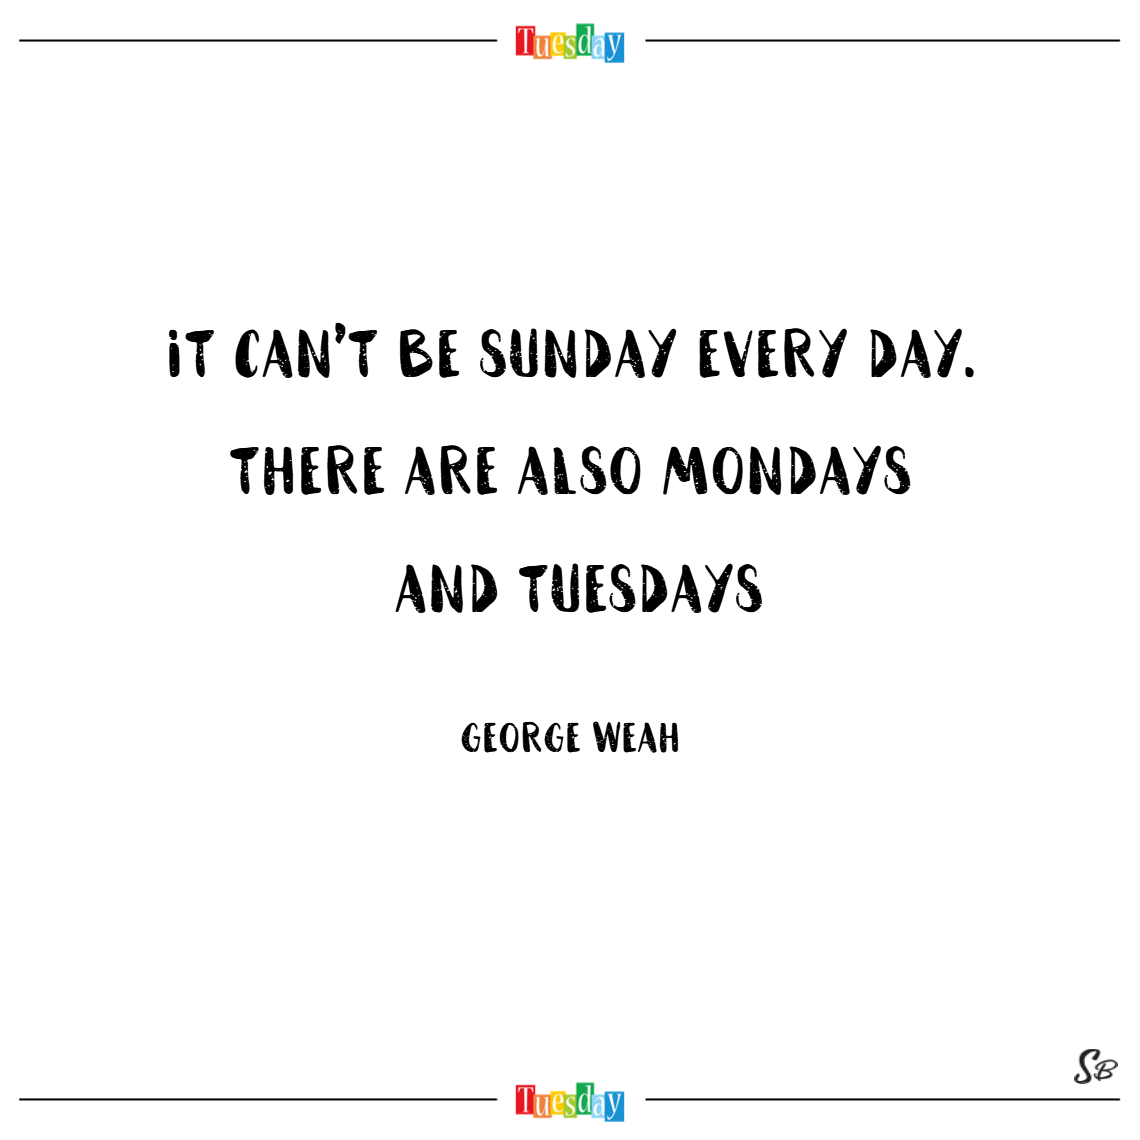 It can't be sunday every day. there are also mondays and tuesdays. – george weah